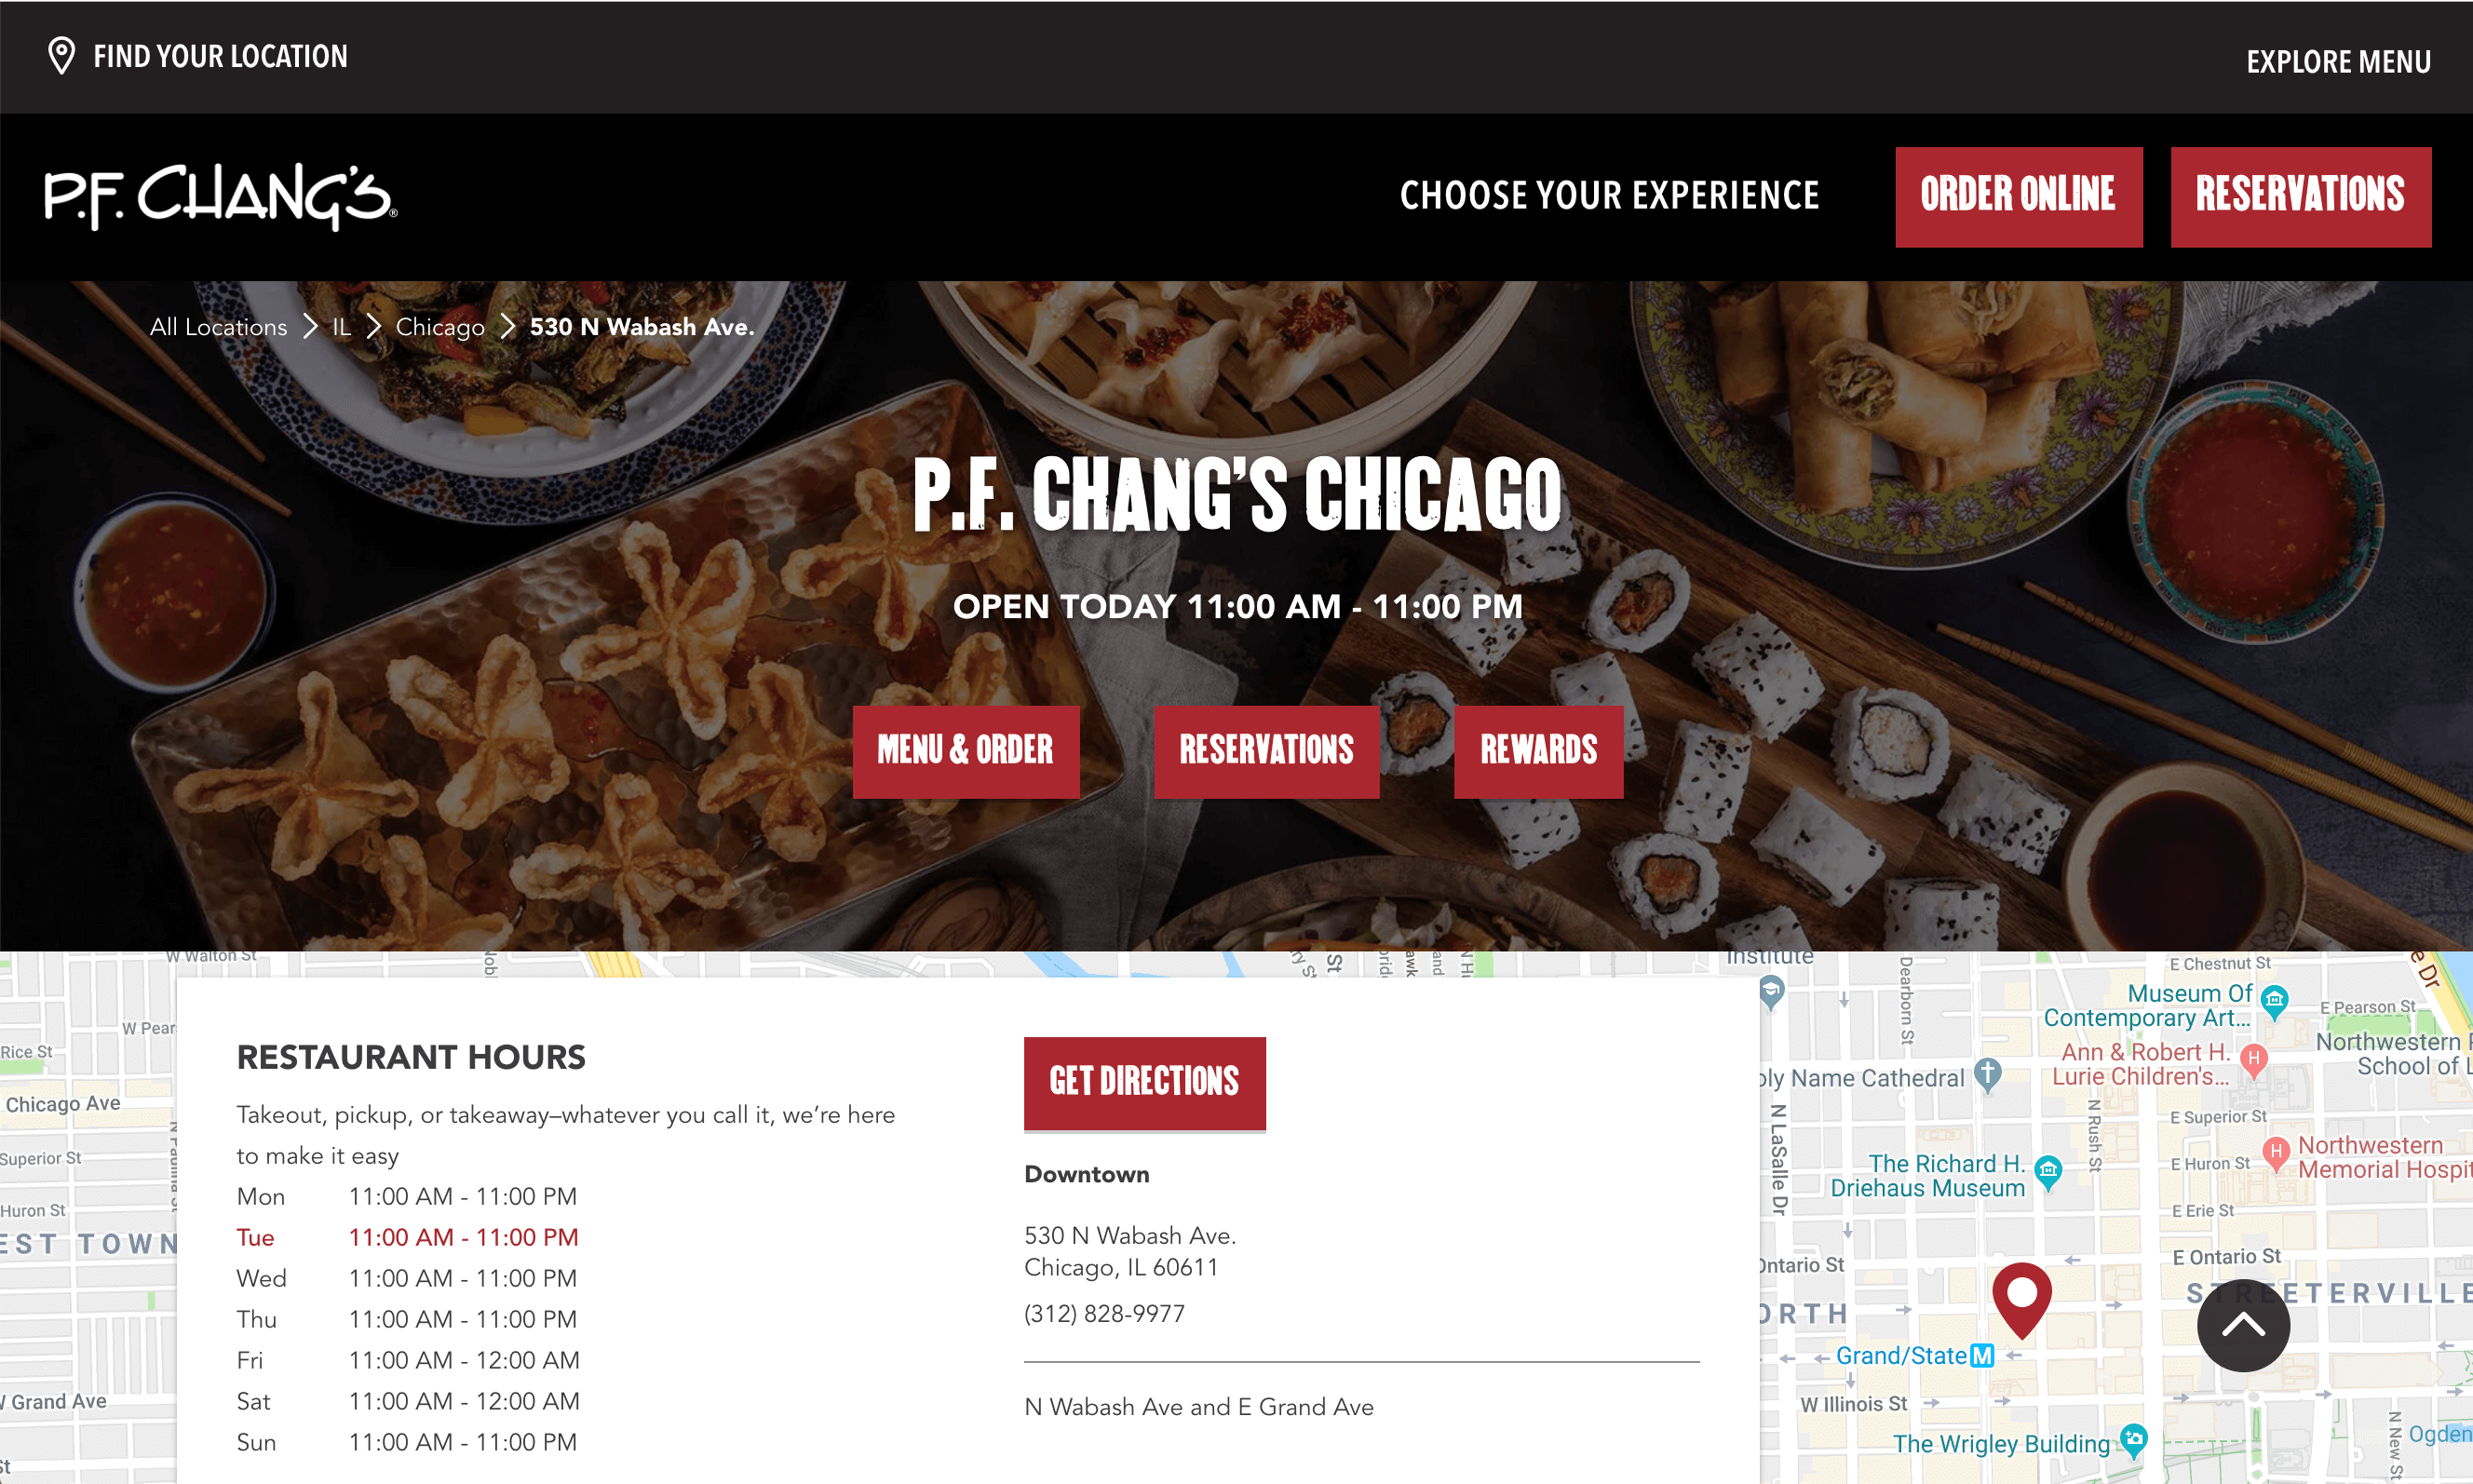 The Location page for P.F. Chang's.